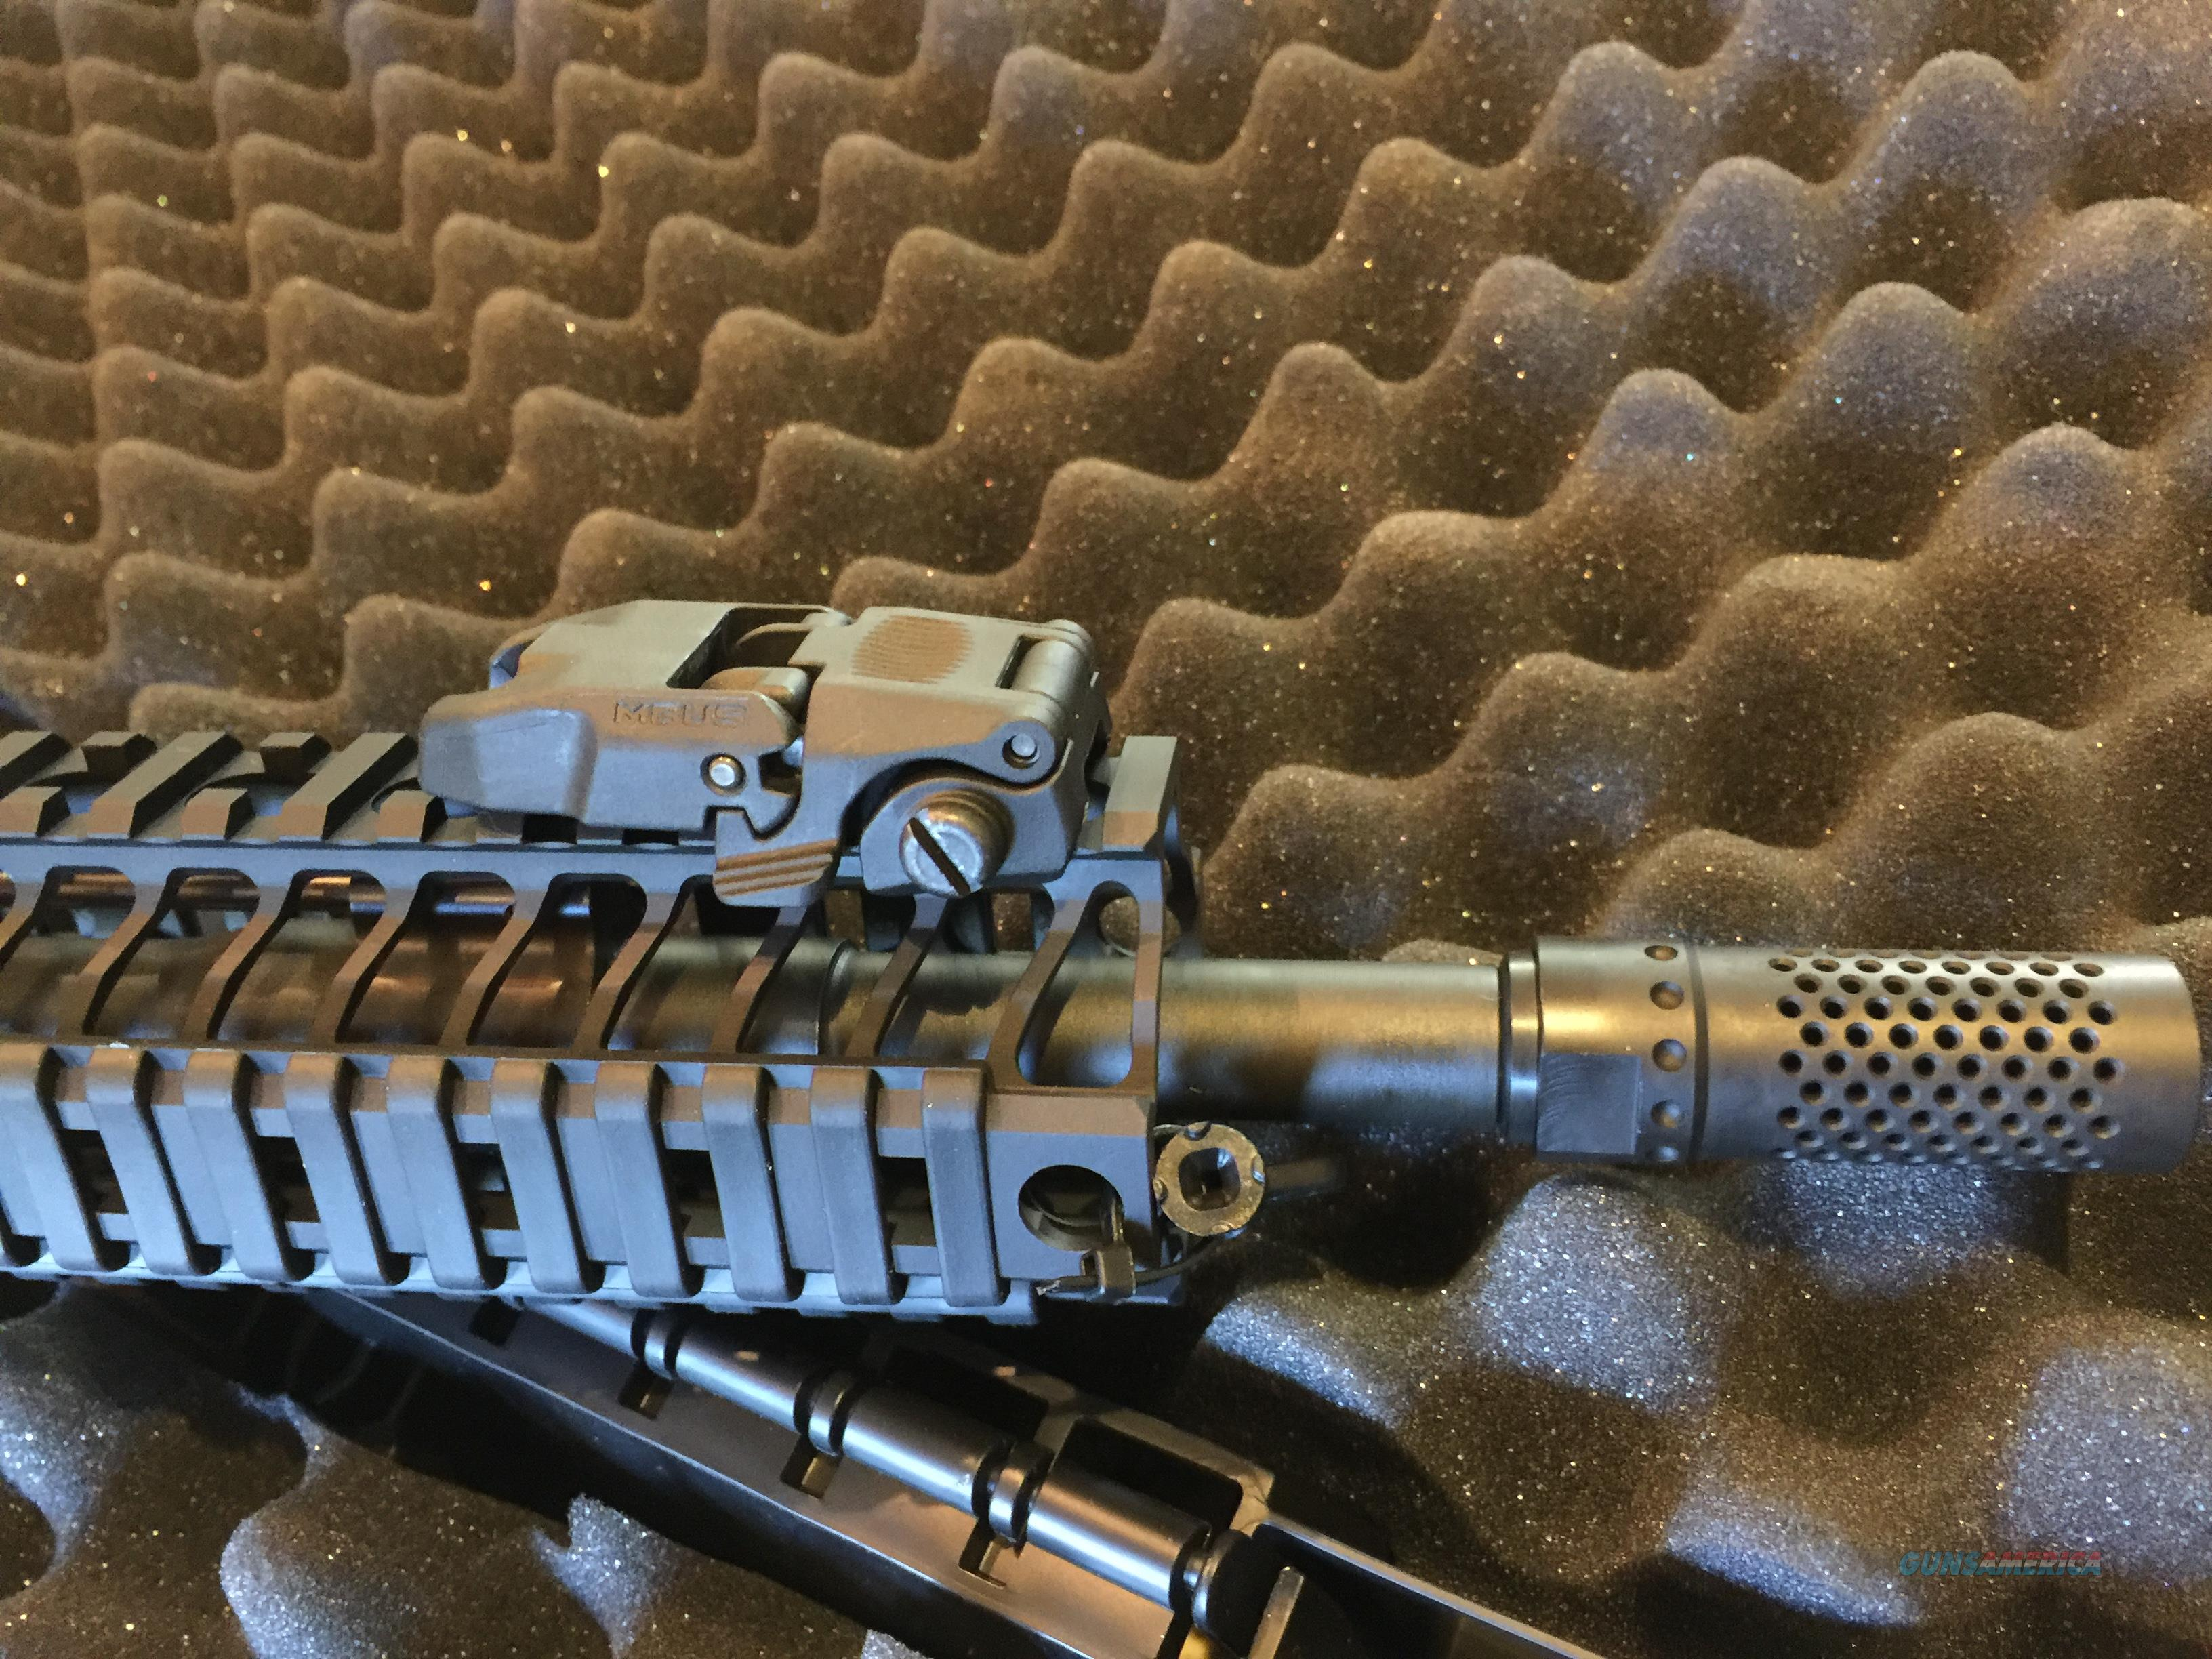 Spike's Tactical - Black Assassin   Guns > Rifles > AR-15 Rifles - Small Manufacturers > Complete Rifle